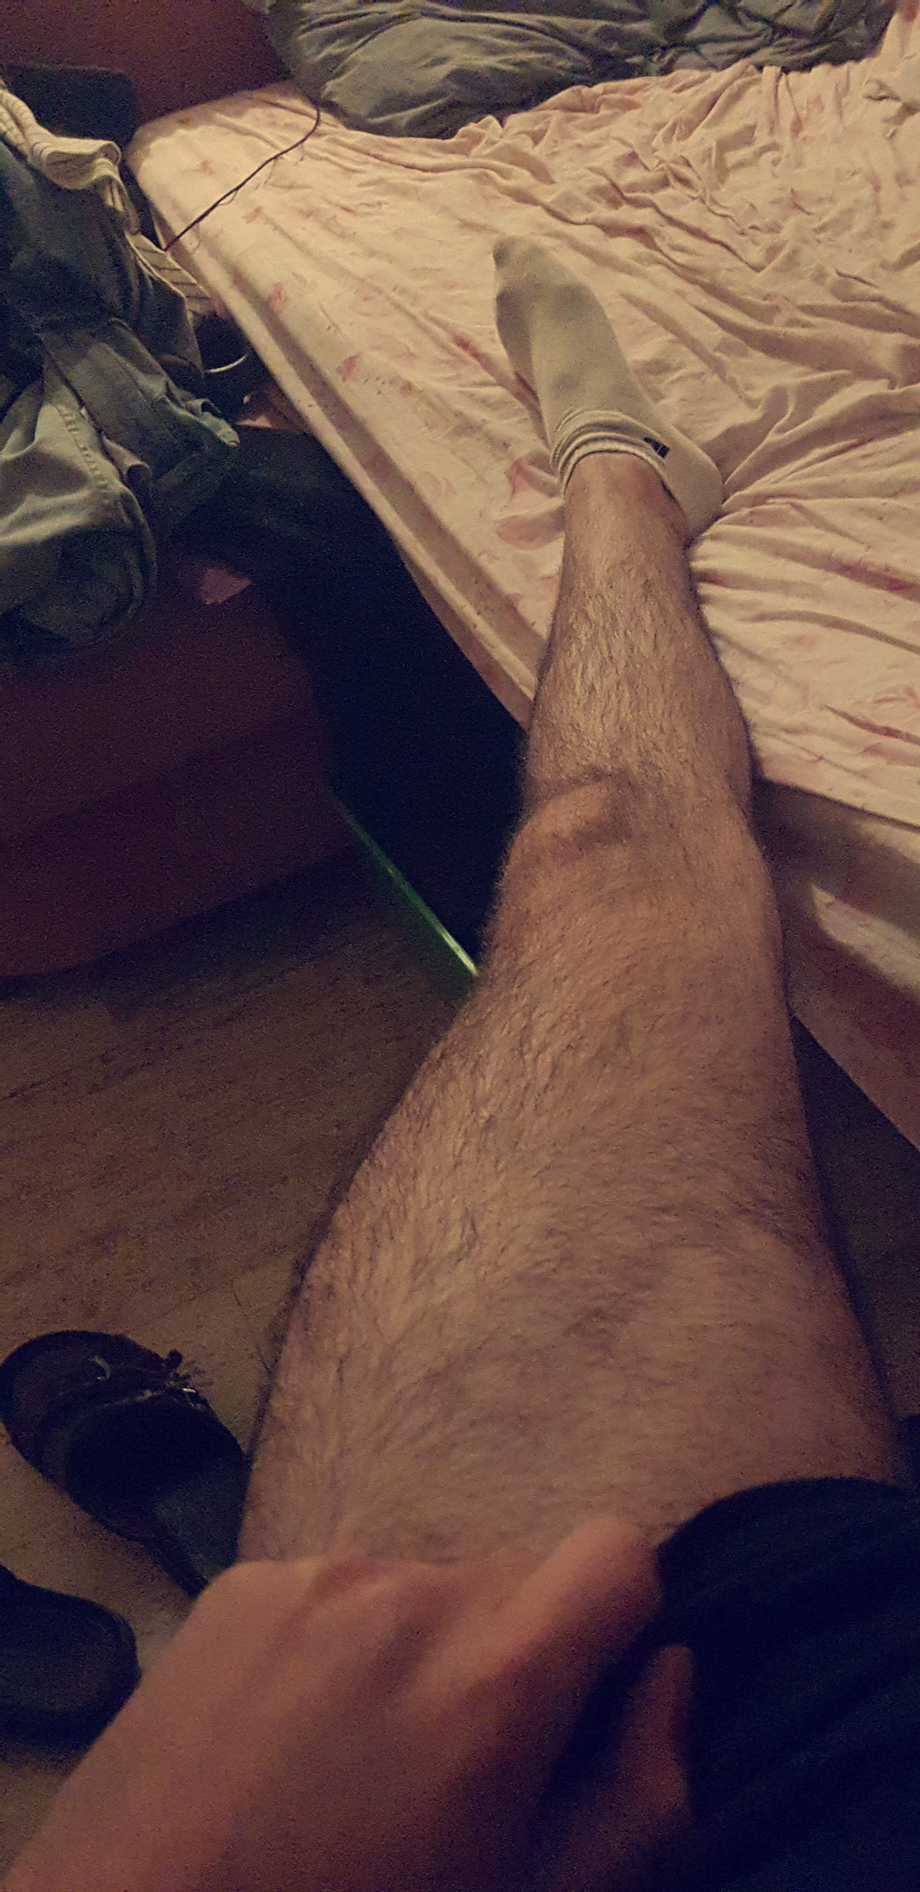 I saw my leg and thought It looked pretty good, then I found this subreddit :) | Legs  Porn XXX | Hot XXX Gays